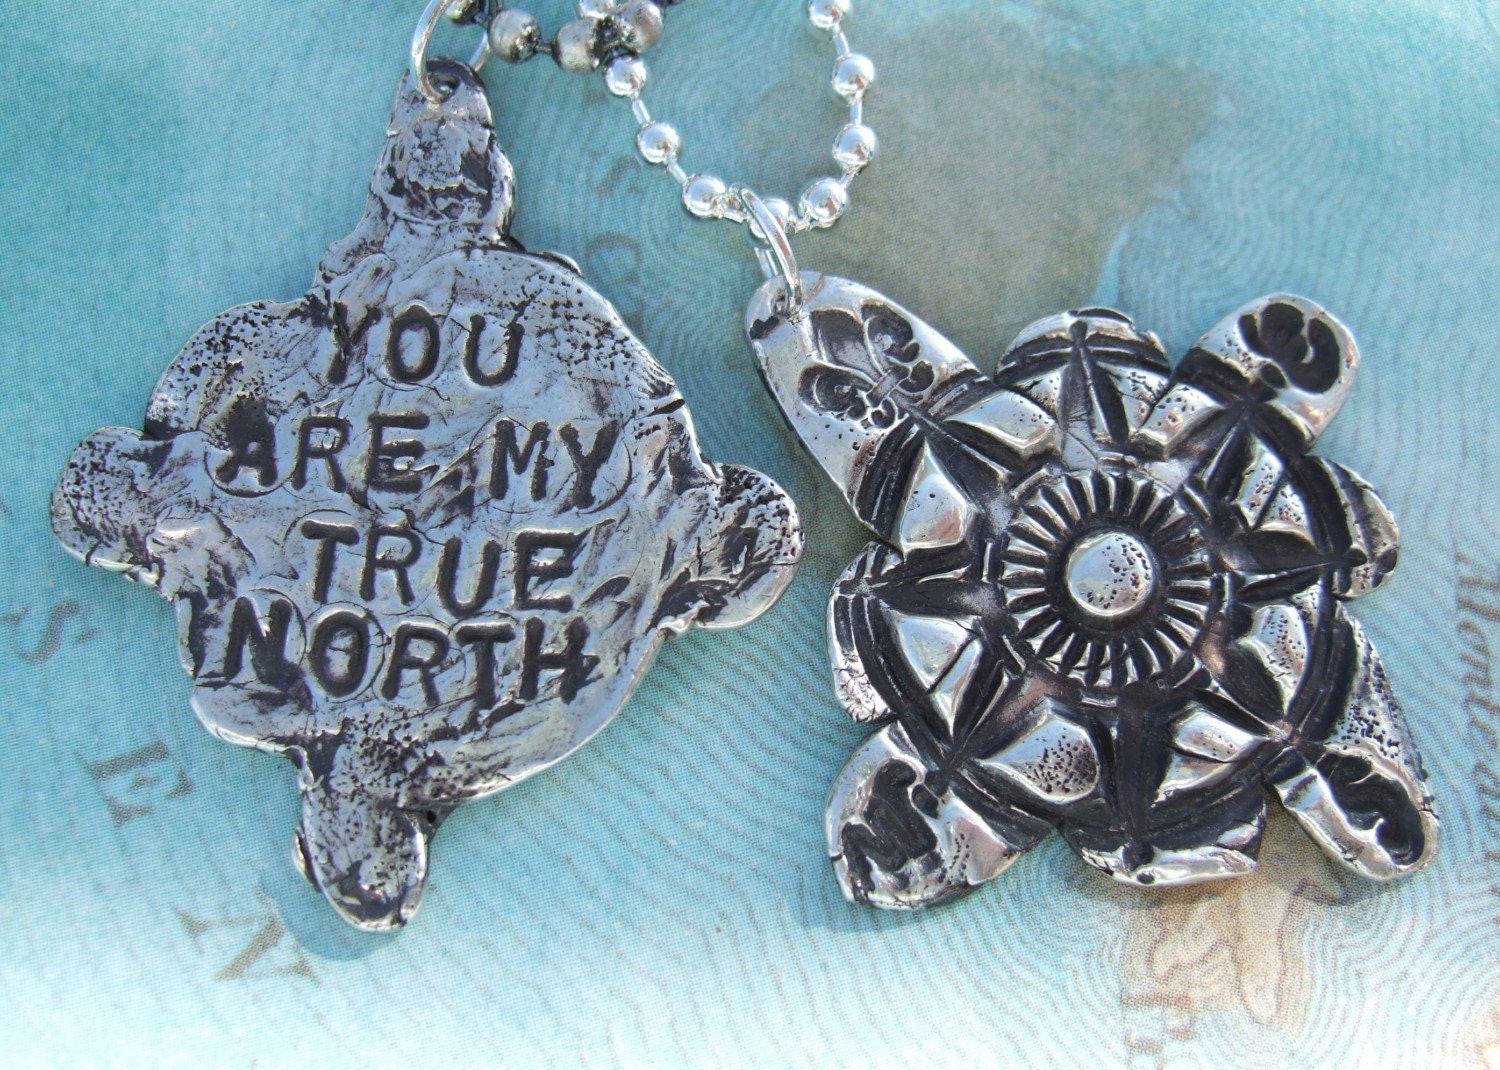 Silver Compass Necklace, You Are My True North, in Eco Friendly Reclaimed Fine Silver And Sterling Silver, His and Hers Pair Gift Set